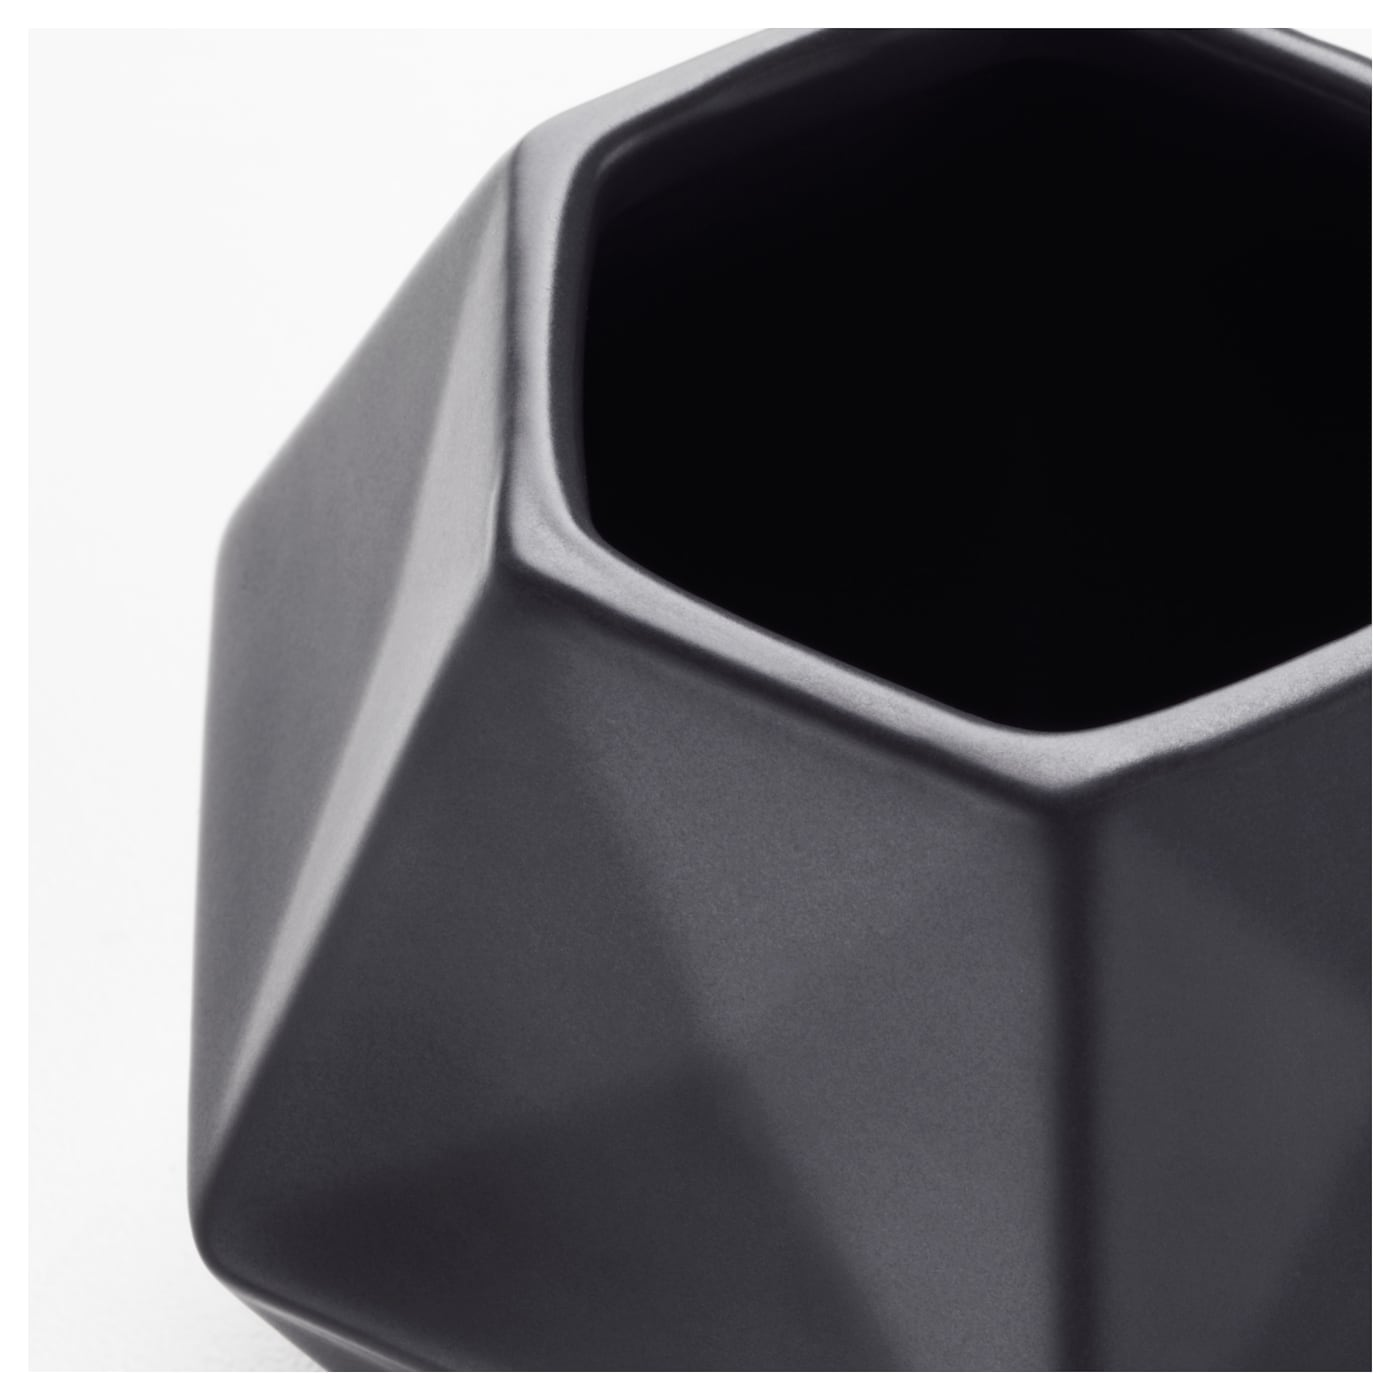 Livslng vase grey 8 cm ikea ikea livslng vase the unique shape makes the vase beautiful both with and without flowers reviewsmspy